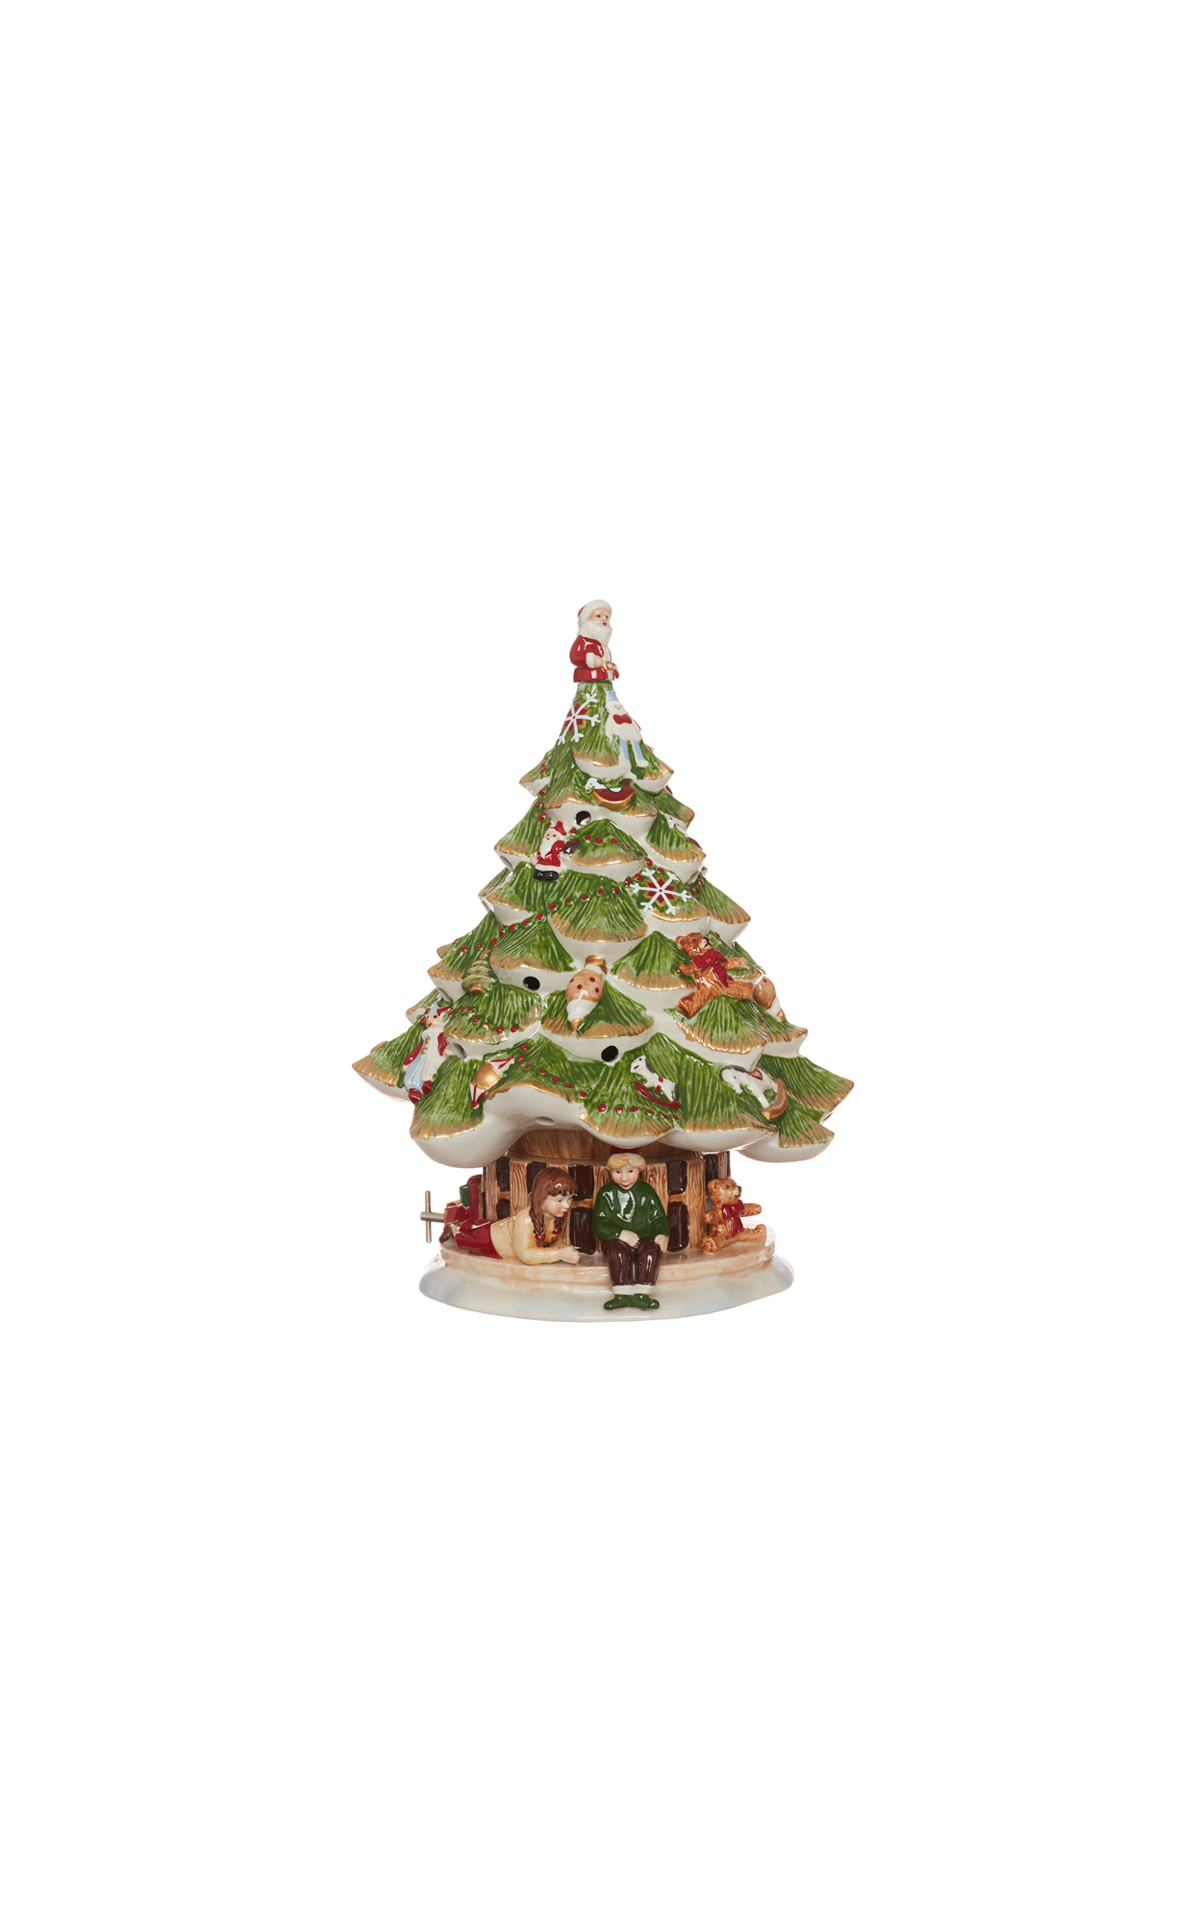 Villeroy & Boch Christmas toy memory from Bicester Village